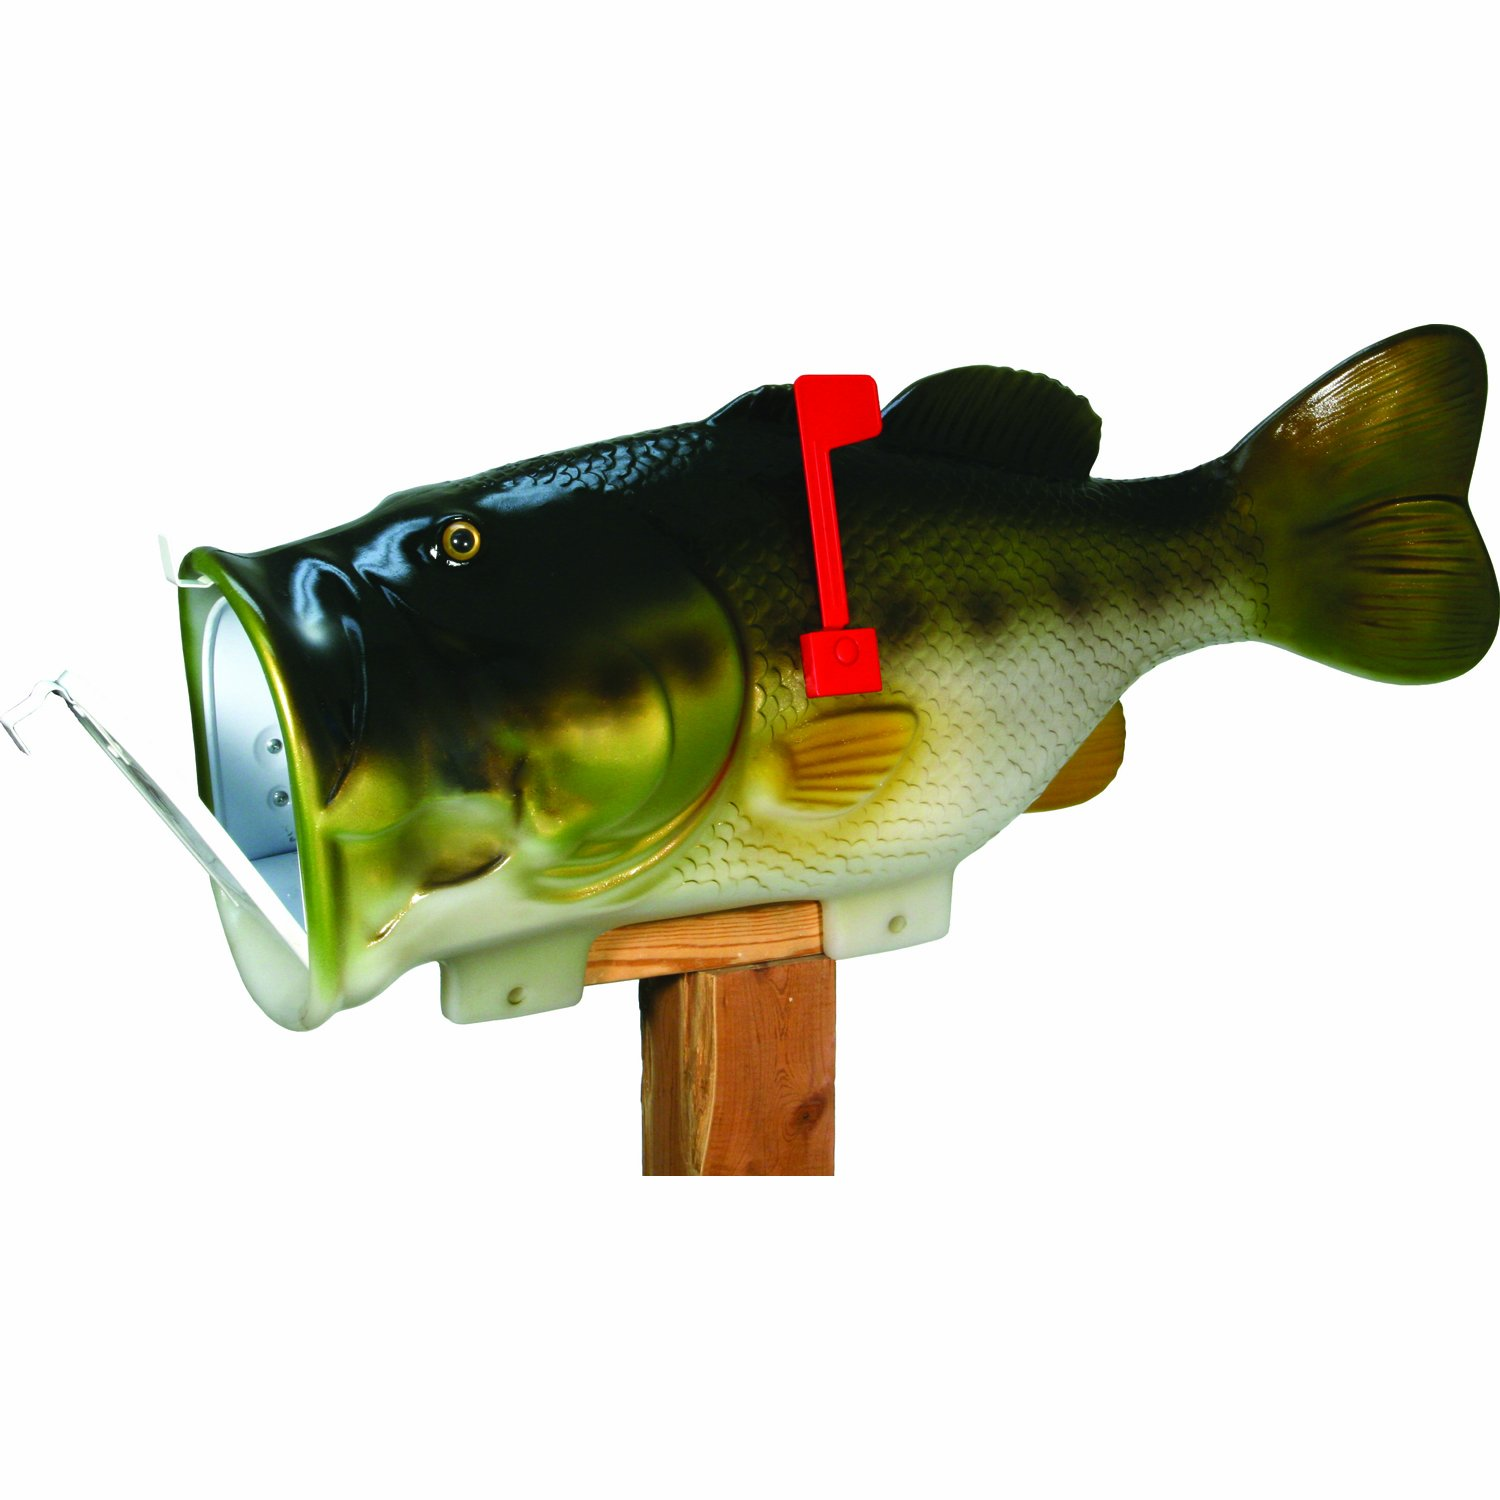 REP Giant Bass Mailbox         Exclusive Color 35 In.  Long by River's Edge Products